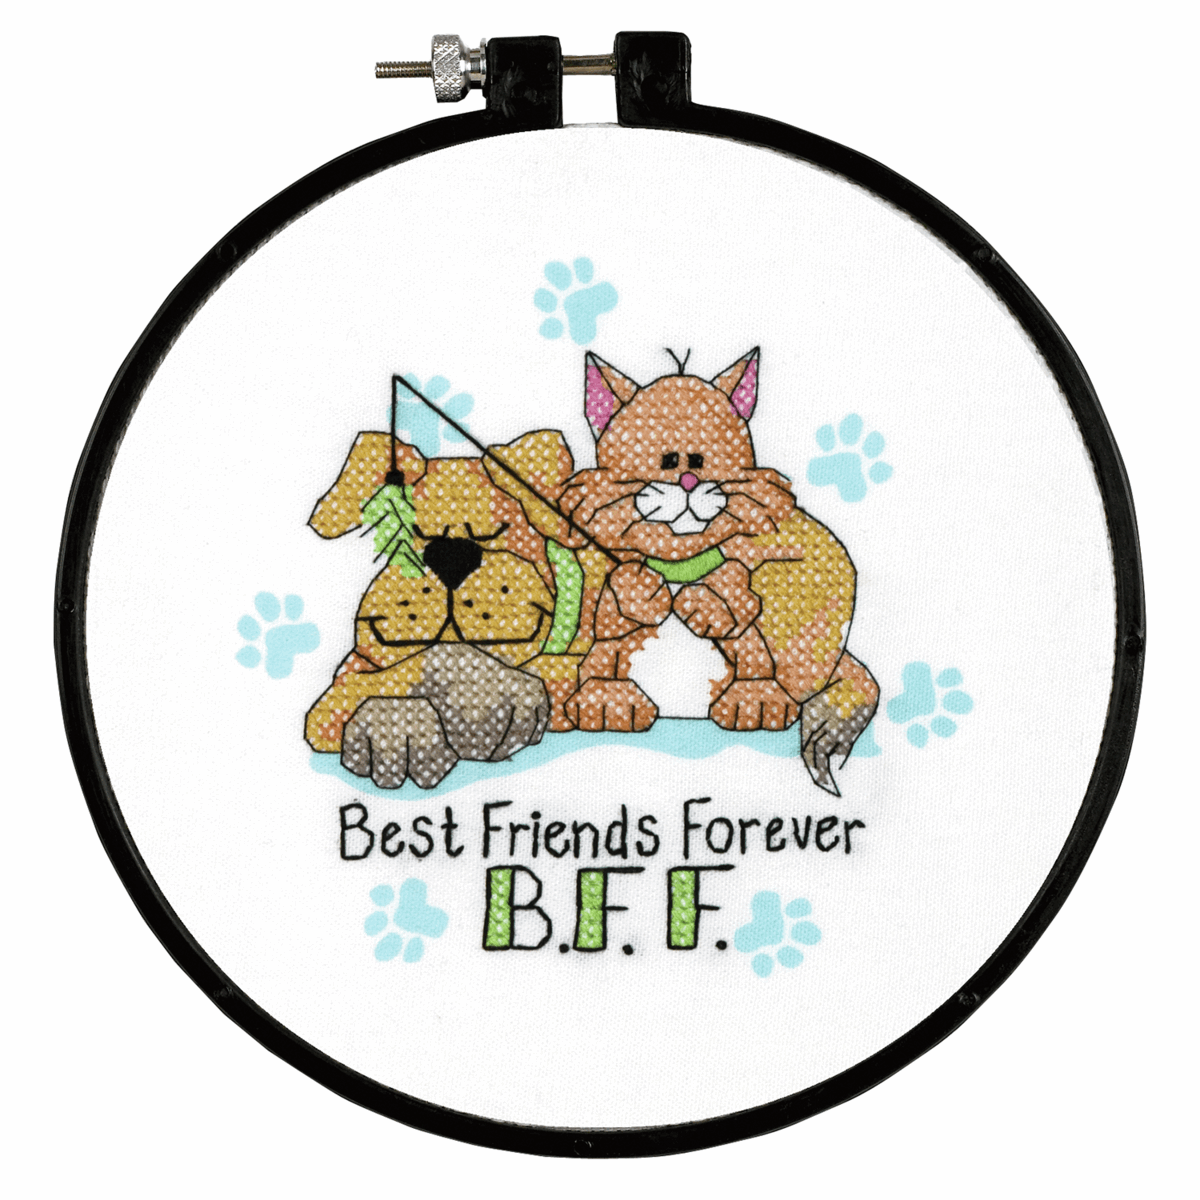 Picture of Learn-a-Craft: Stamped X Stitch: Best Friends